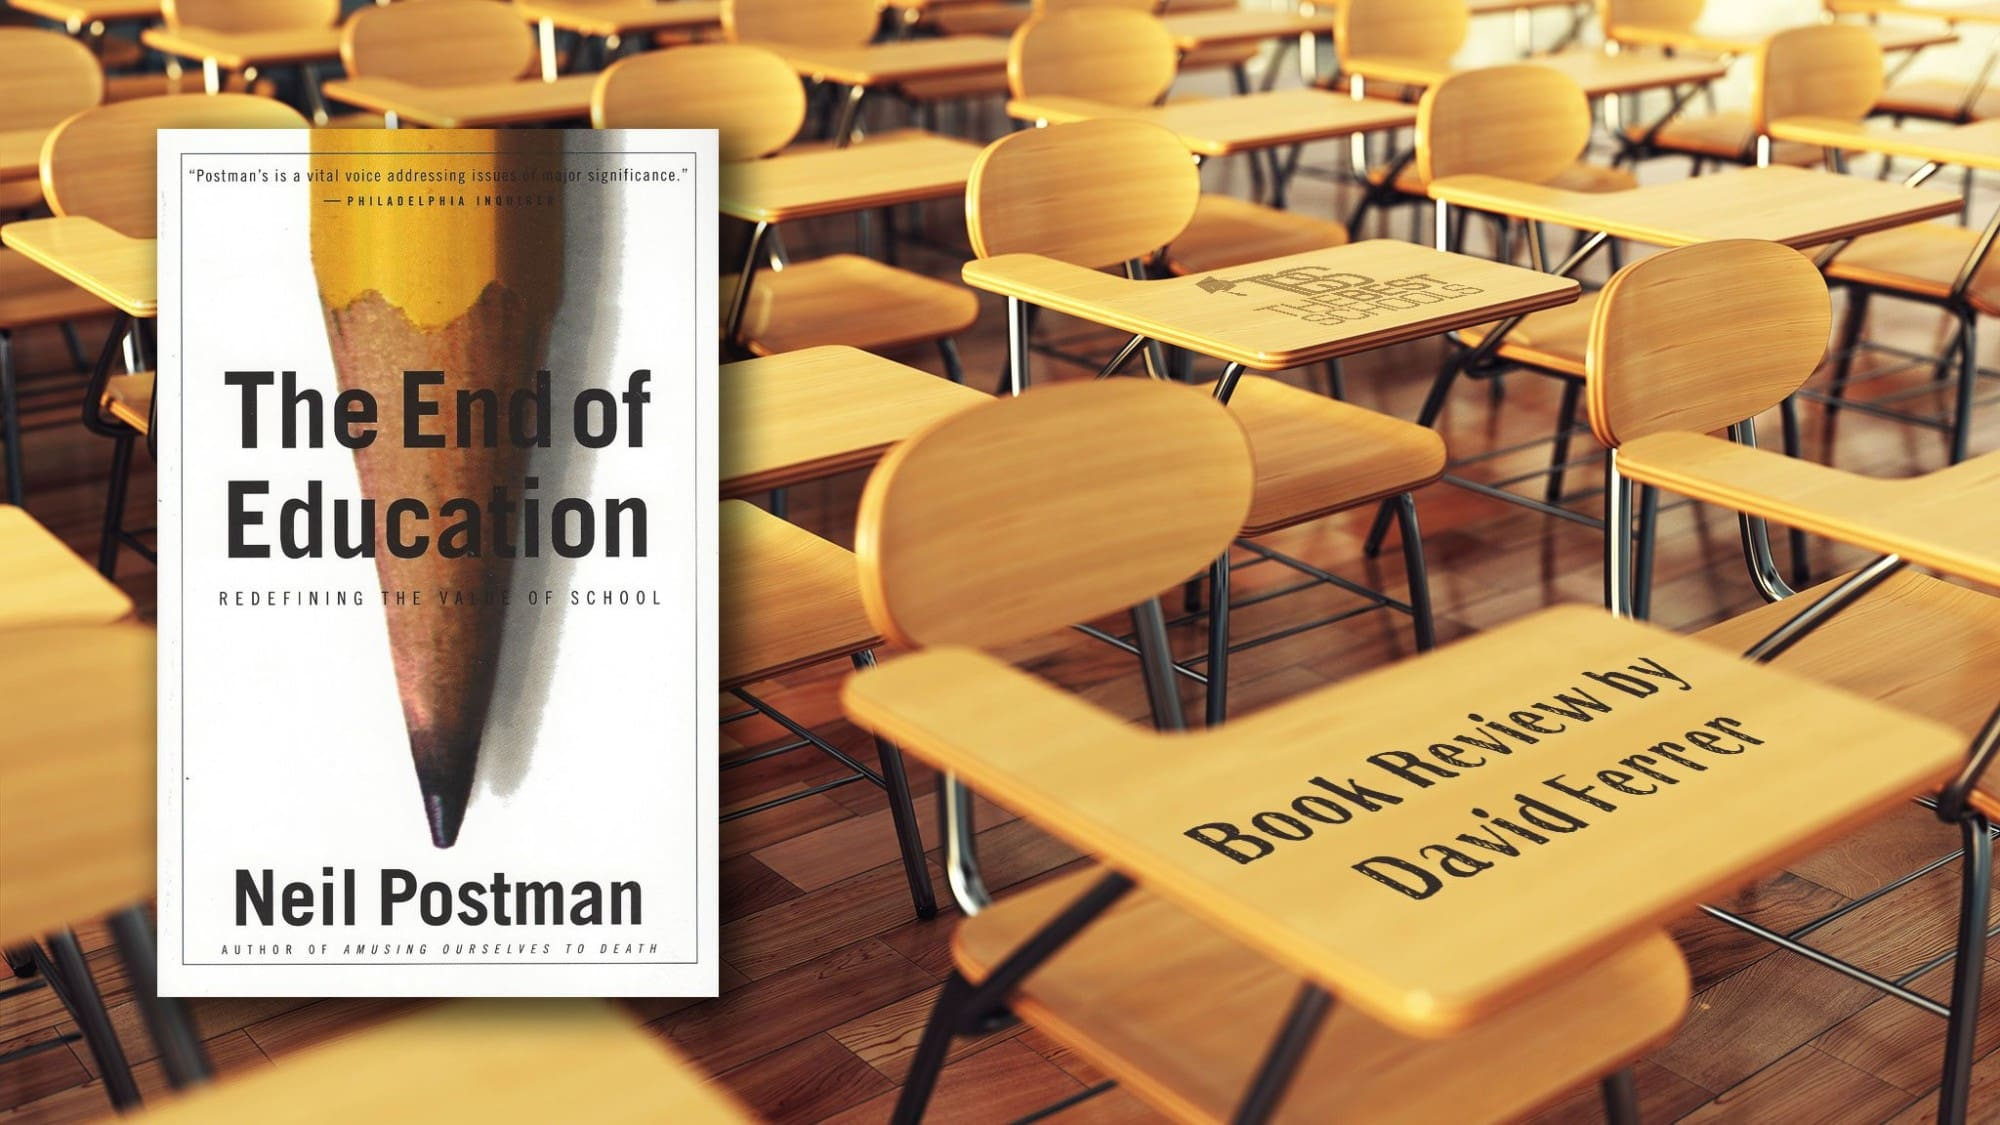 The End Of Education Redefining The Value Of School By Neil Postman  The End Of Education Redefining The Value Of School By Neil Postmana  Review